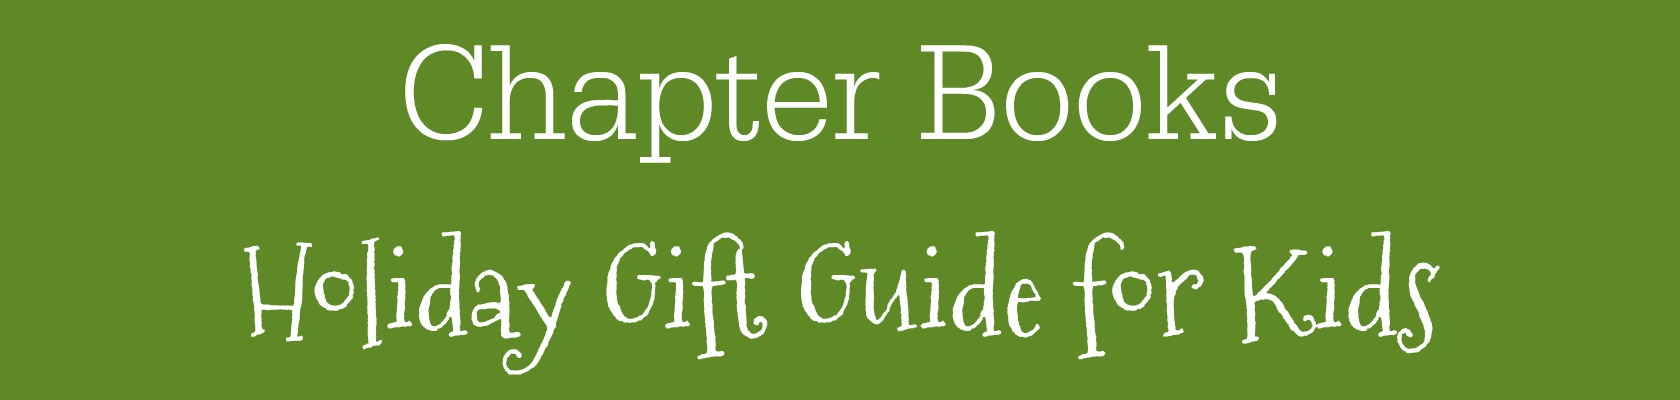 Chapter Books gift guide